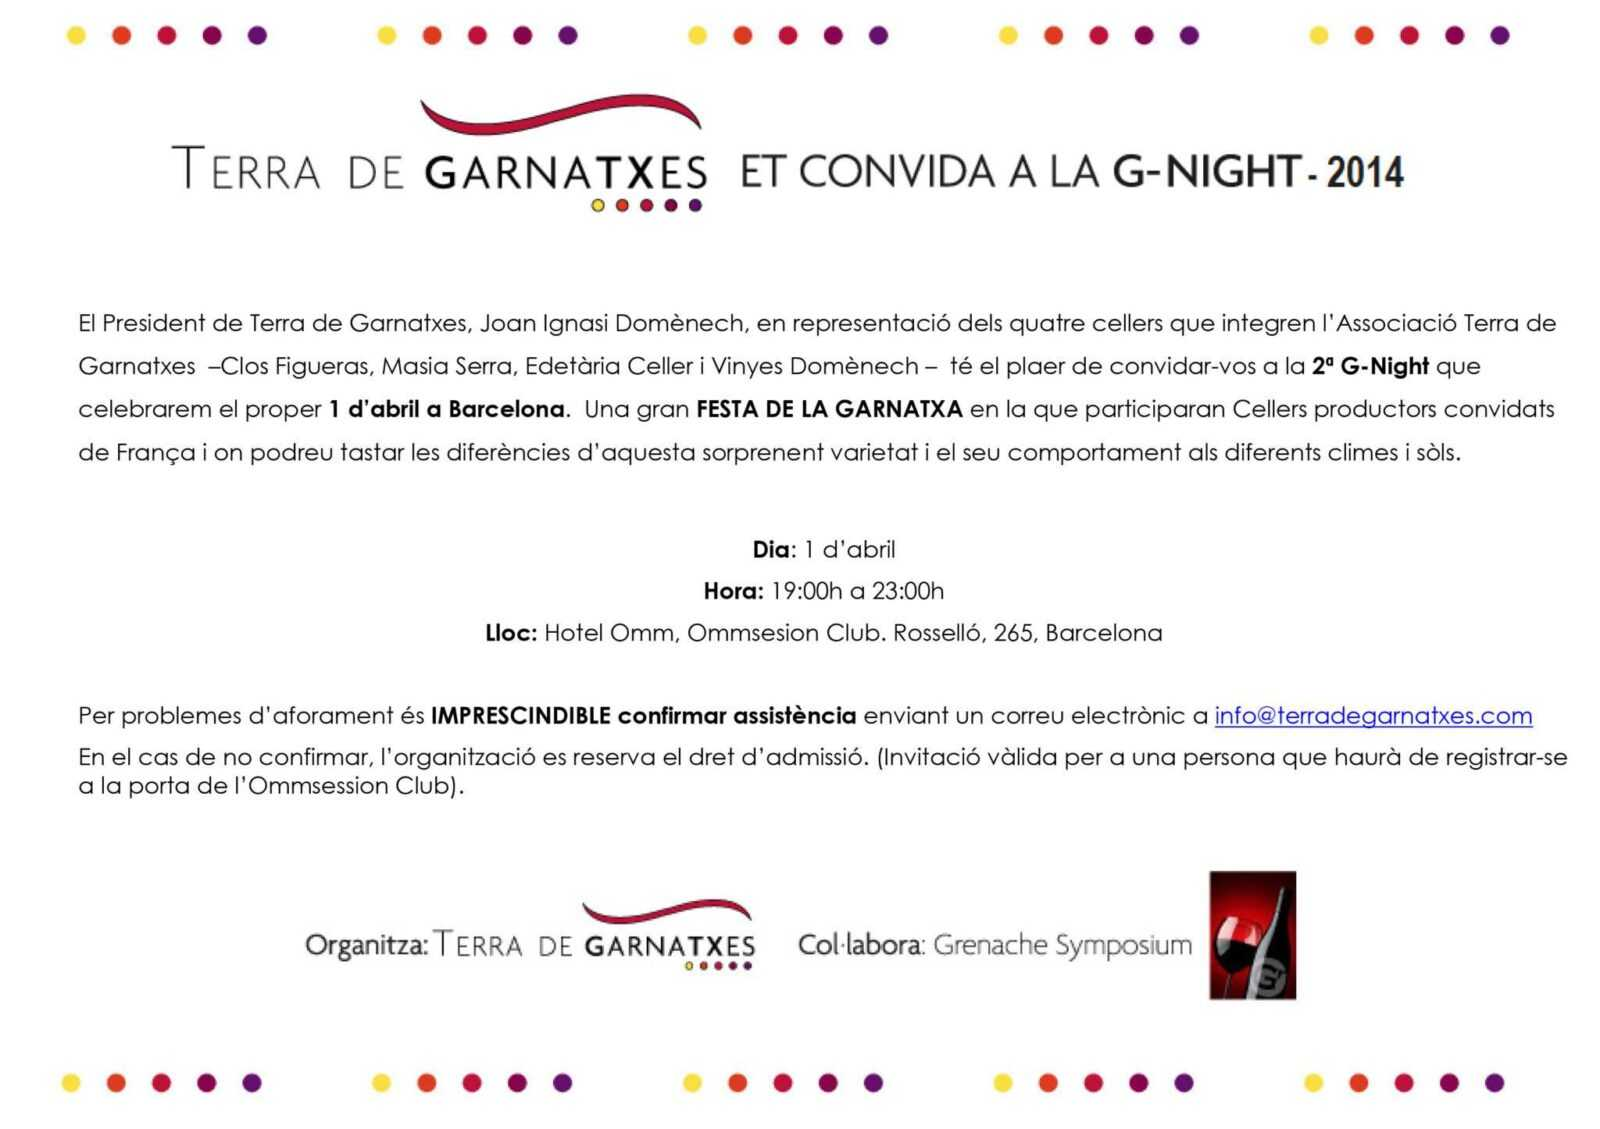 terra de garnatxes 2 G-Night